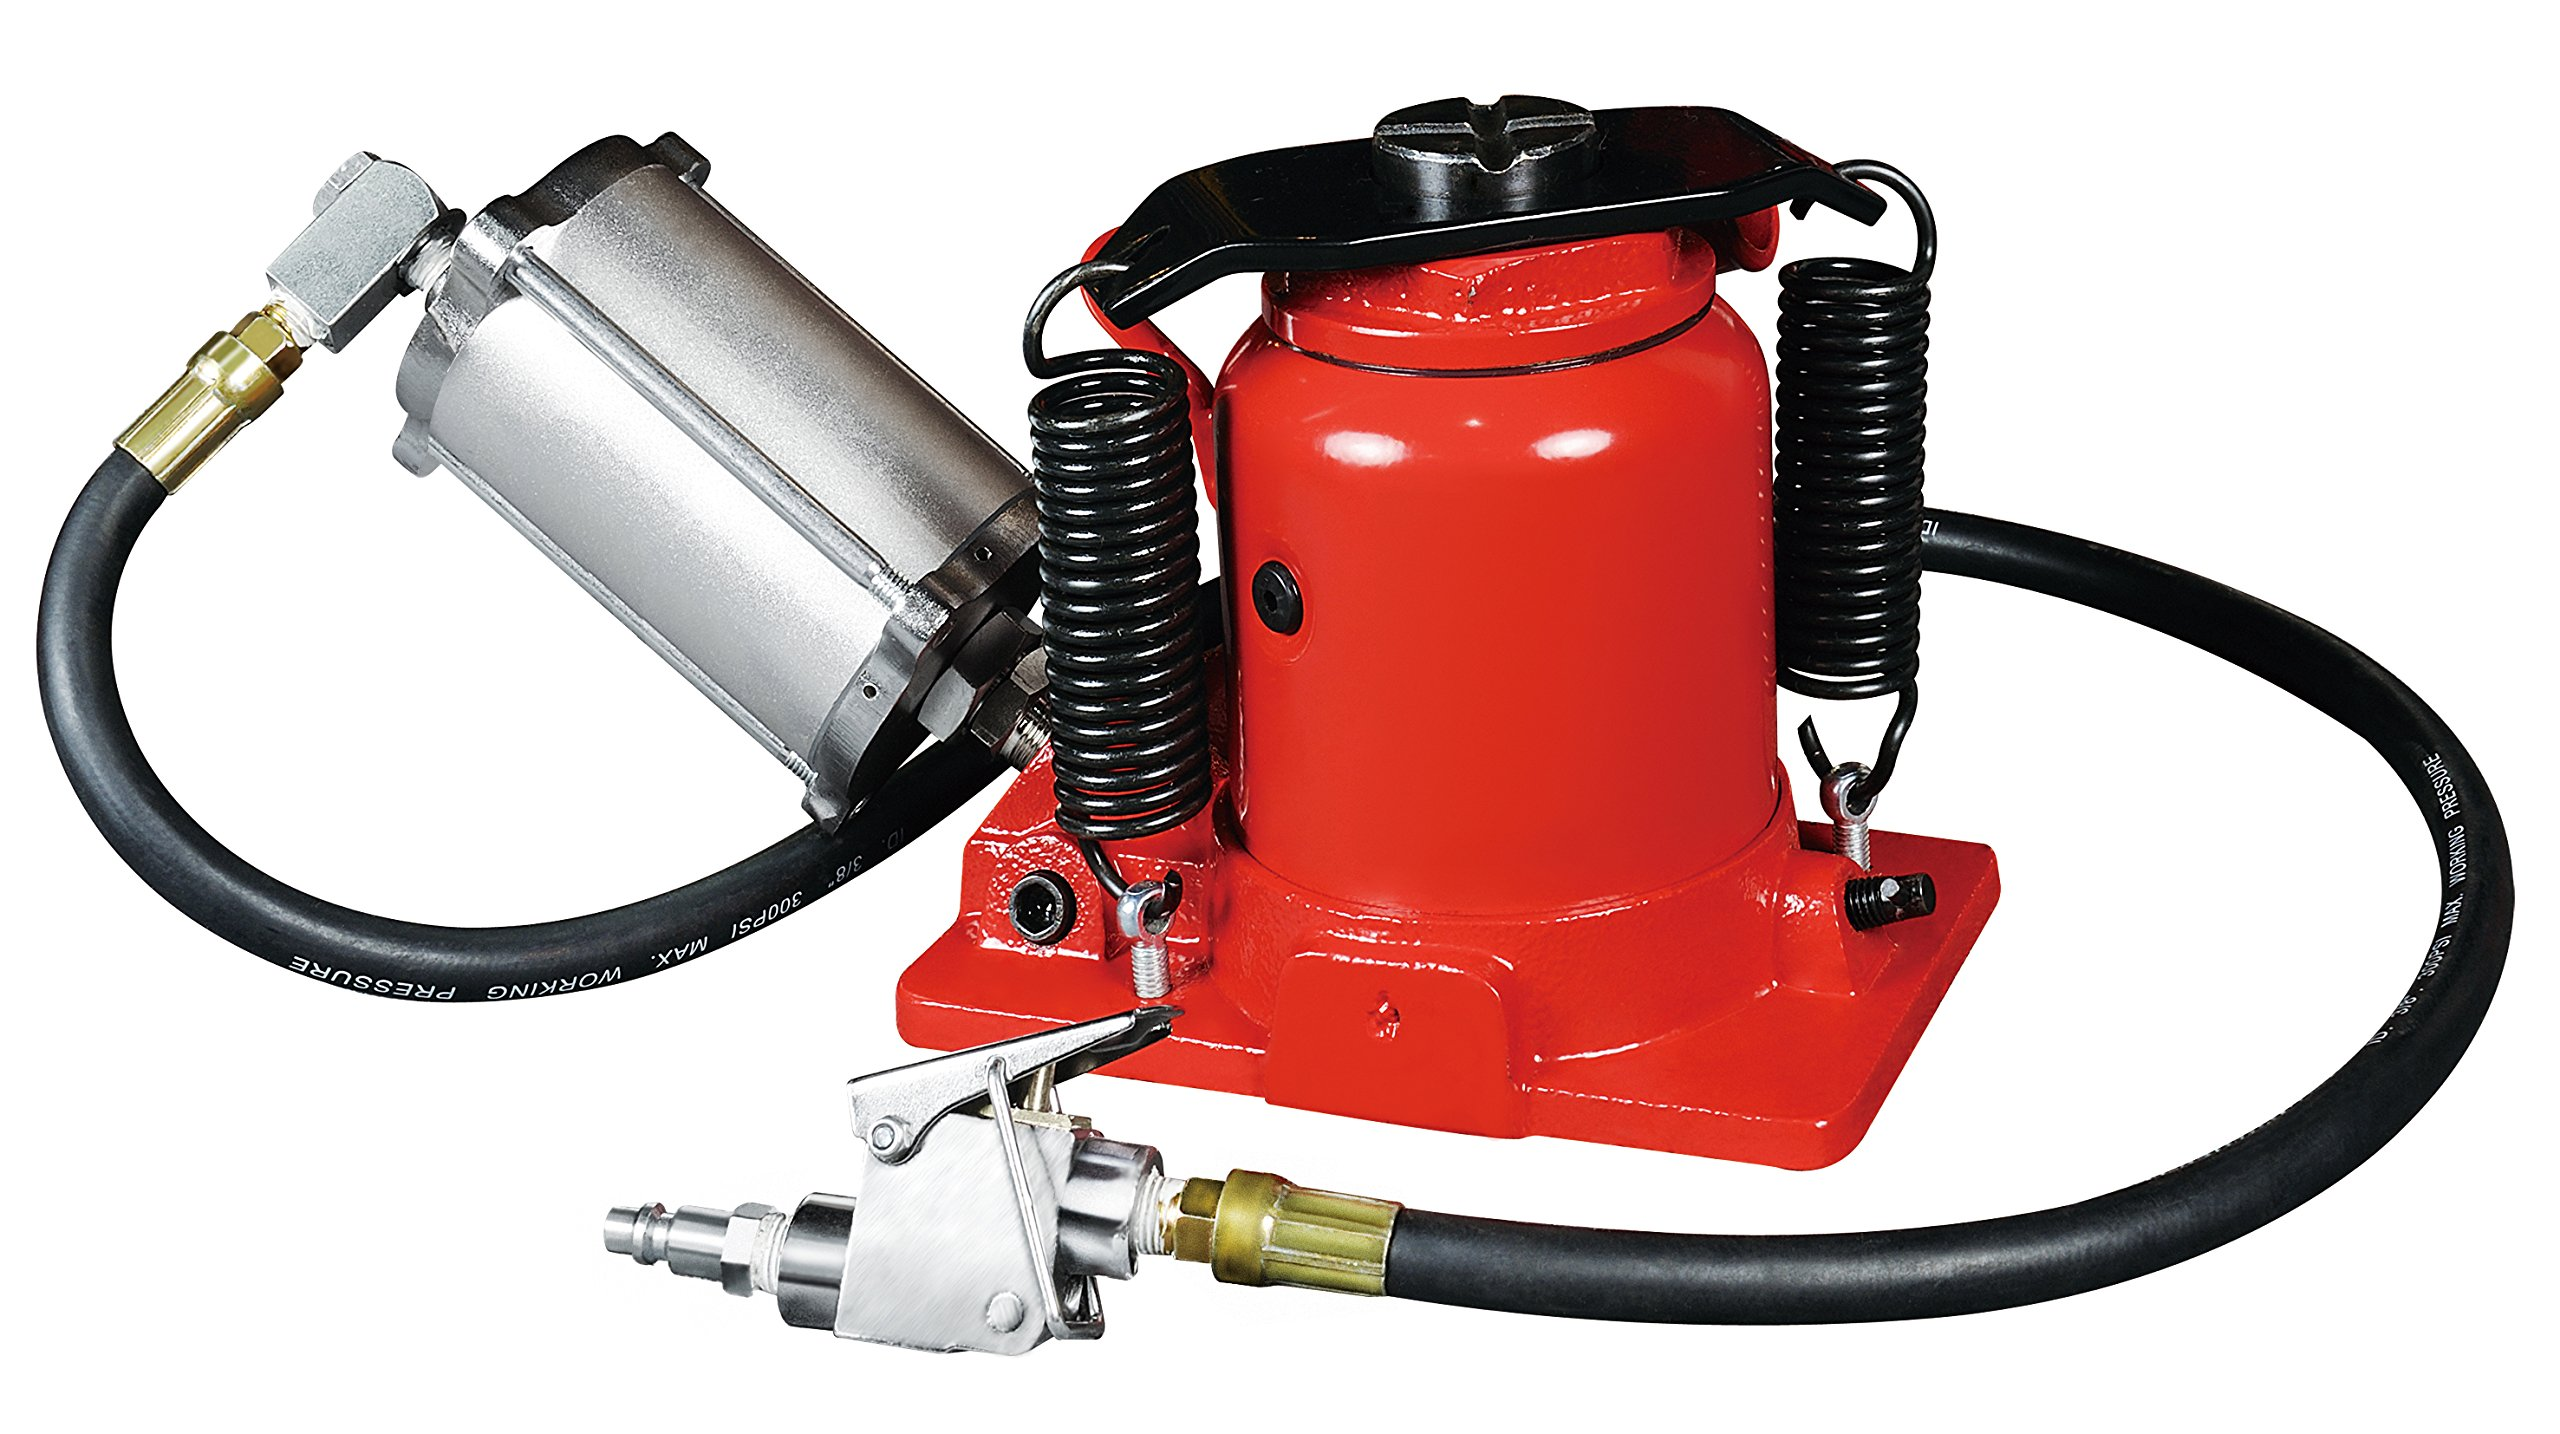 Astro 5304A 20 Ton Low Profile Air/Manual Bottle Jack by Astro Pneumatic Tool